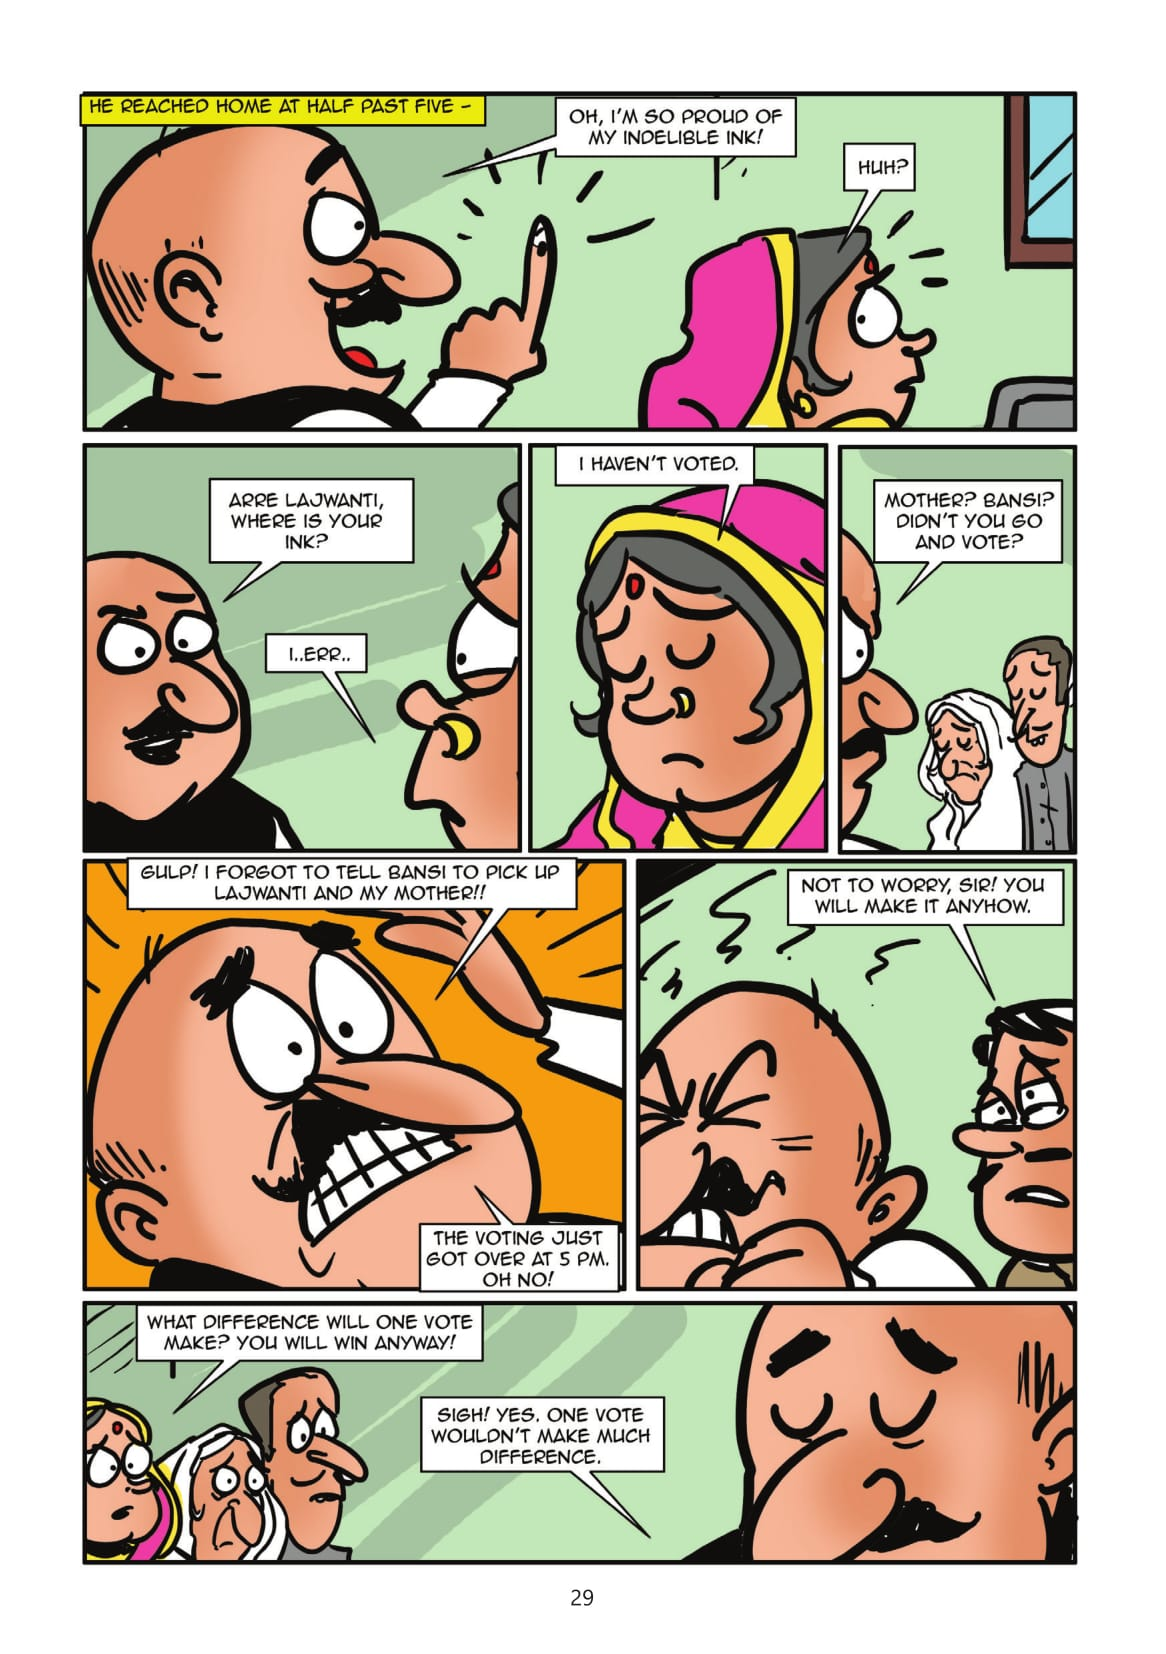 A page from 'One Vote' (Story by Kanan and Kelly Dhru/Illustrated by Abhijeet Kini).